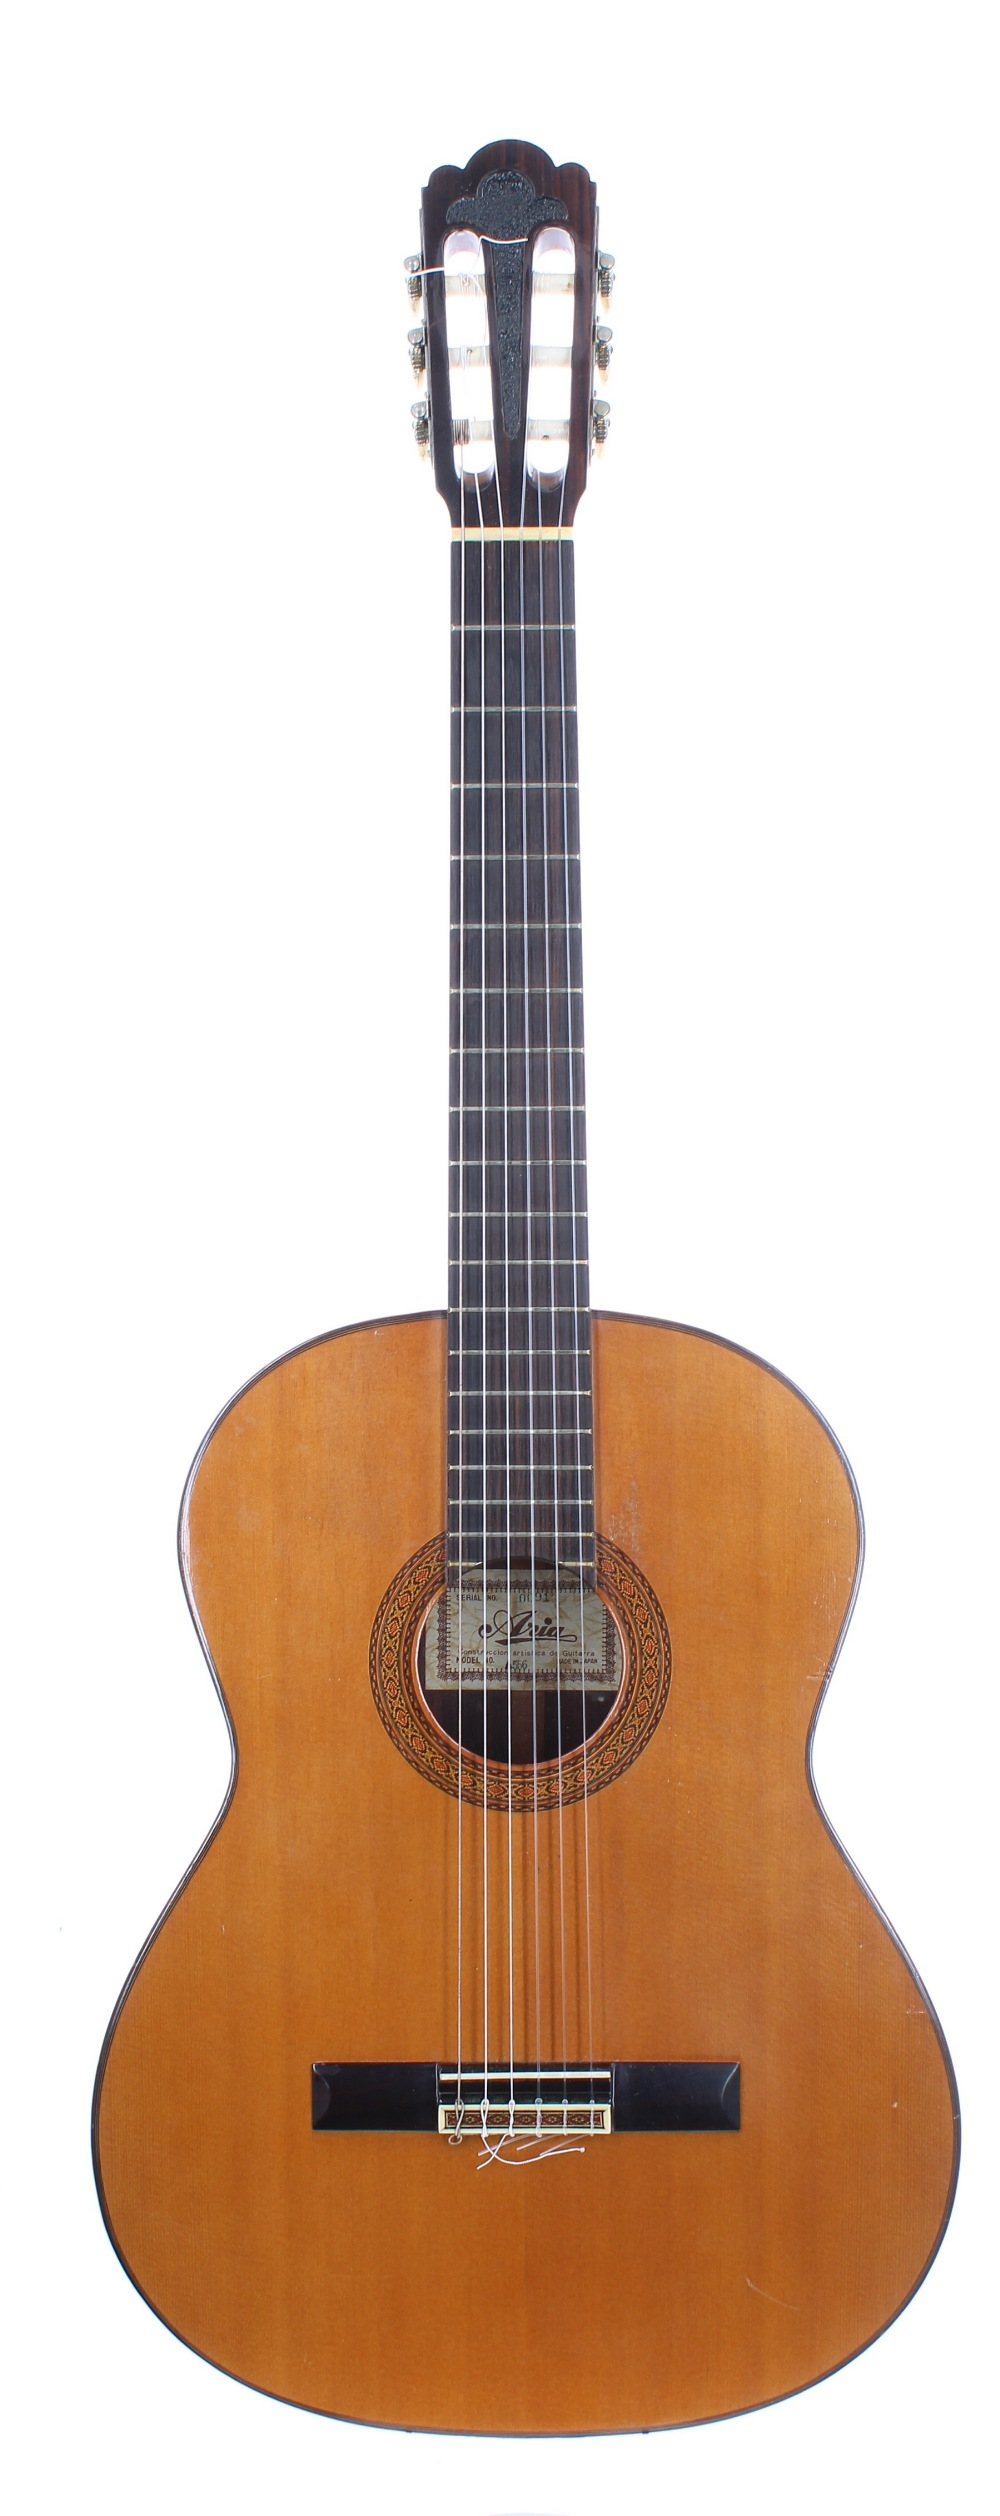 Aria A556 classical guitar, made in Japan; Back and sides: Indian rosewood, lacquer clouding,